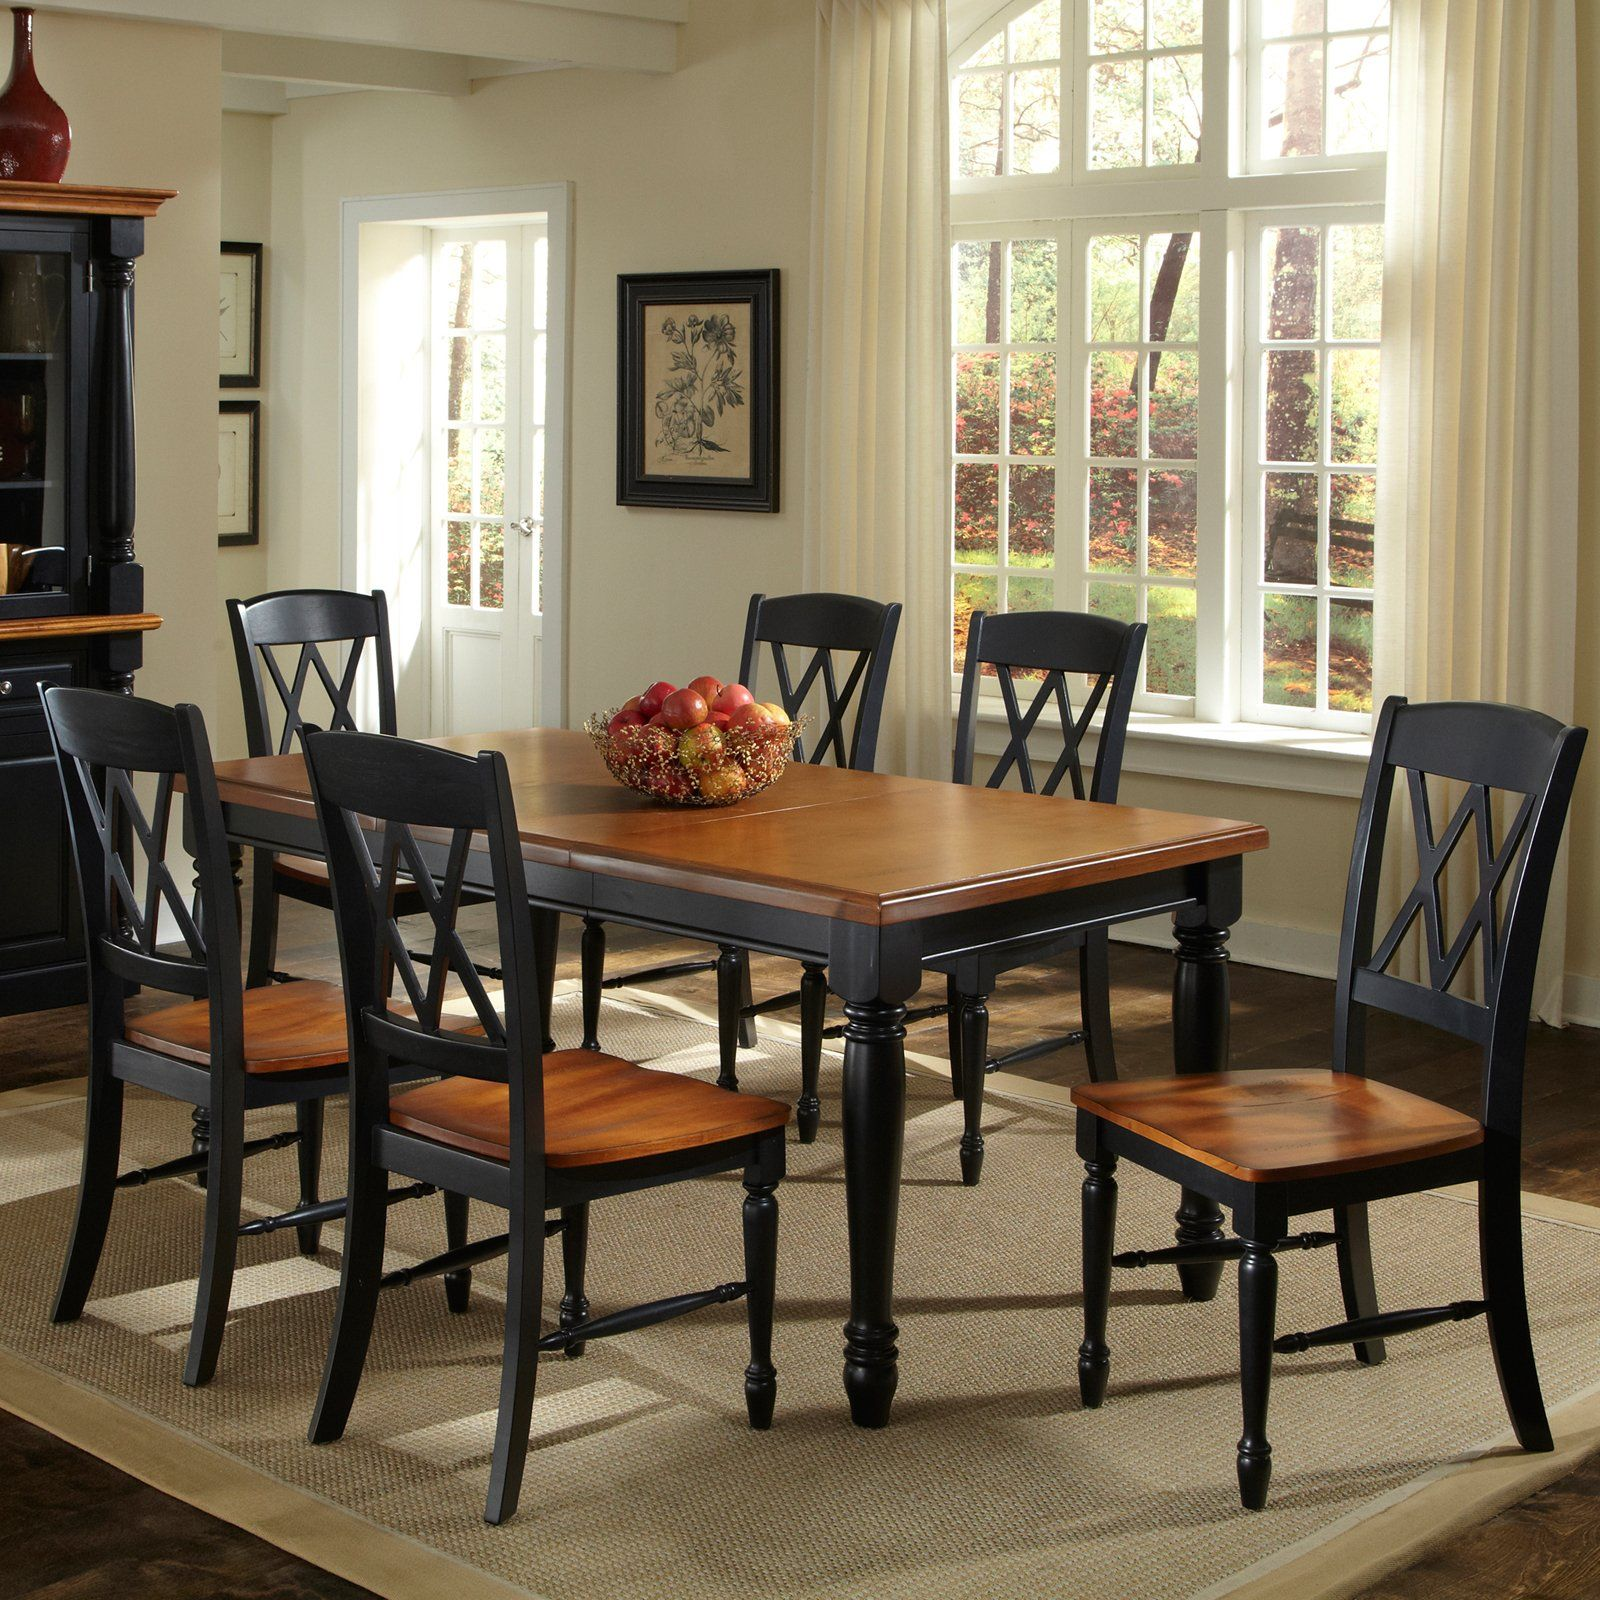 Home Styles Monarch 7 Piece Dining Table With 6 Double X